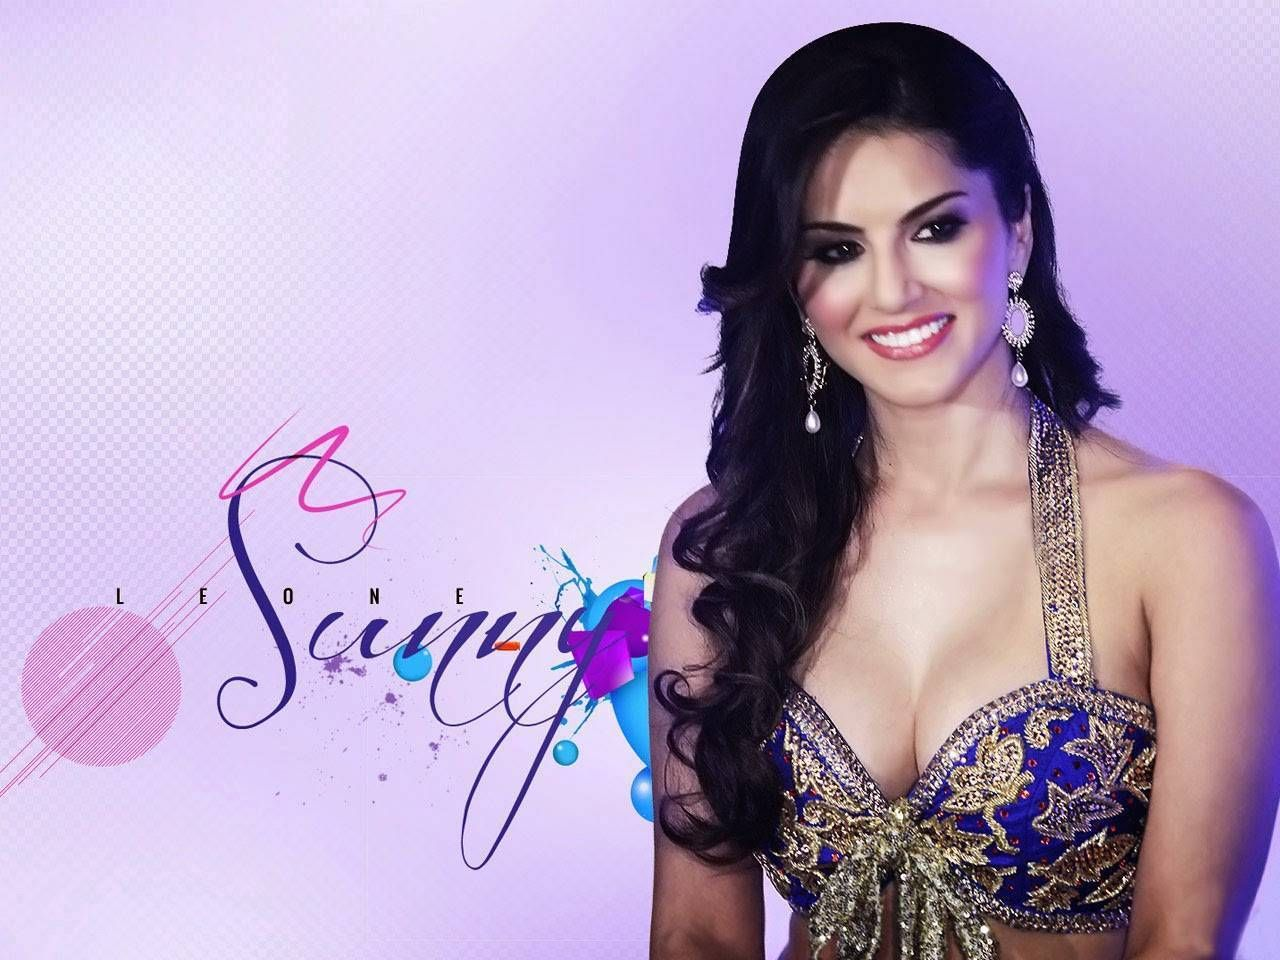 gorgeous sunny leone new wallpapers is a high resolution desktop